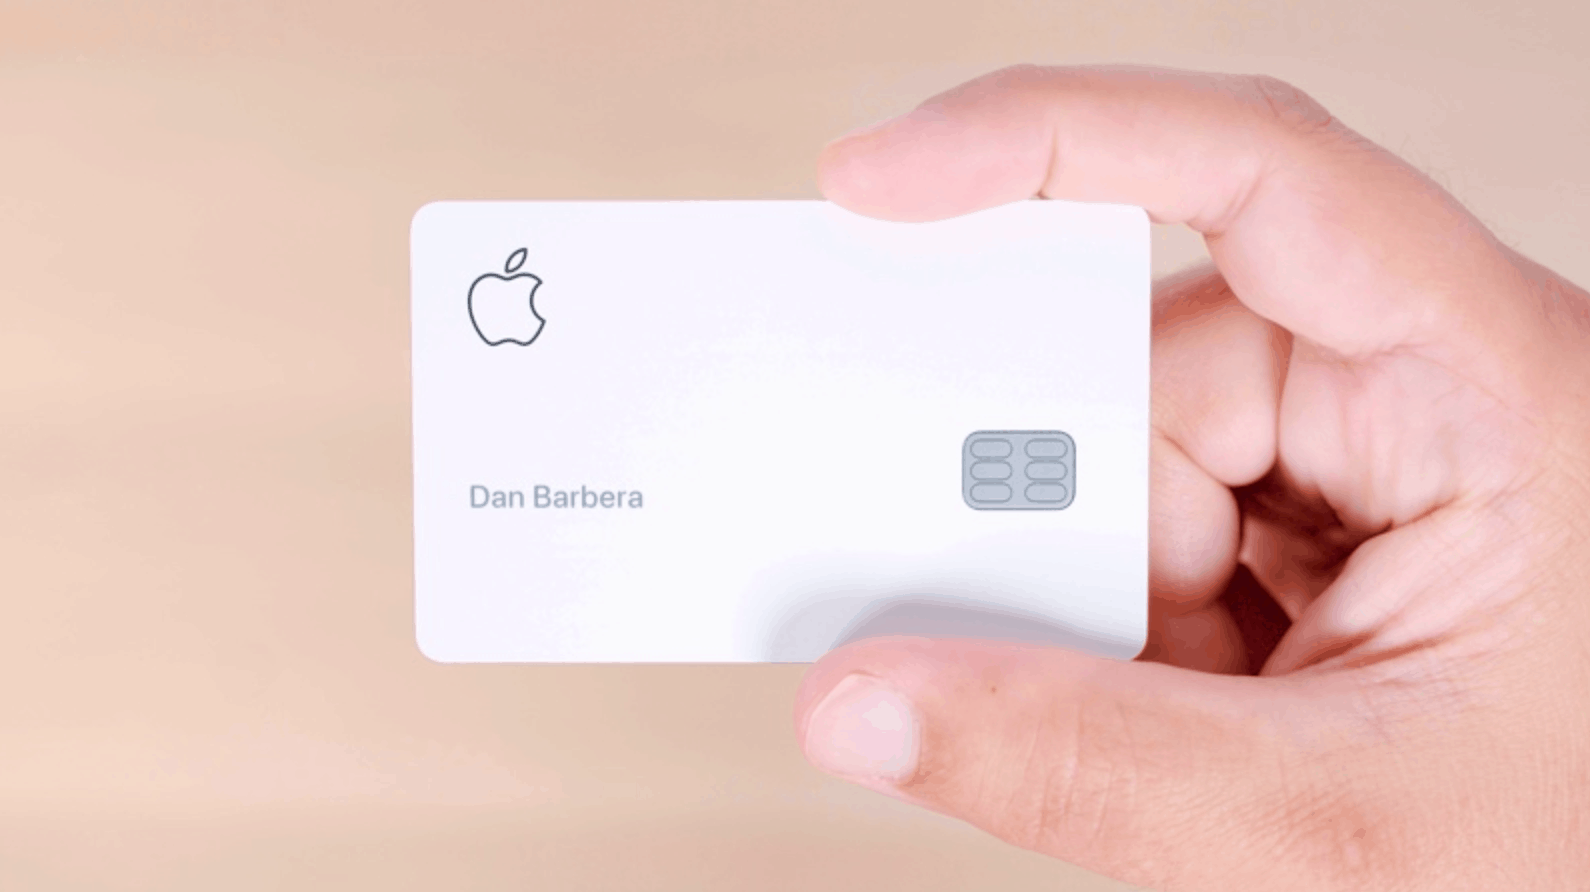 Goldman Sachs CEO Says Apple Card Launch 'Most Successful Ever'